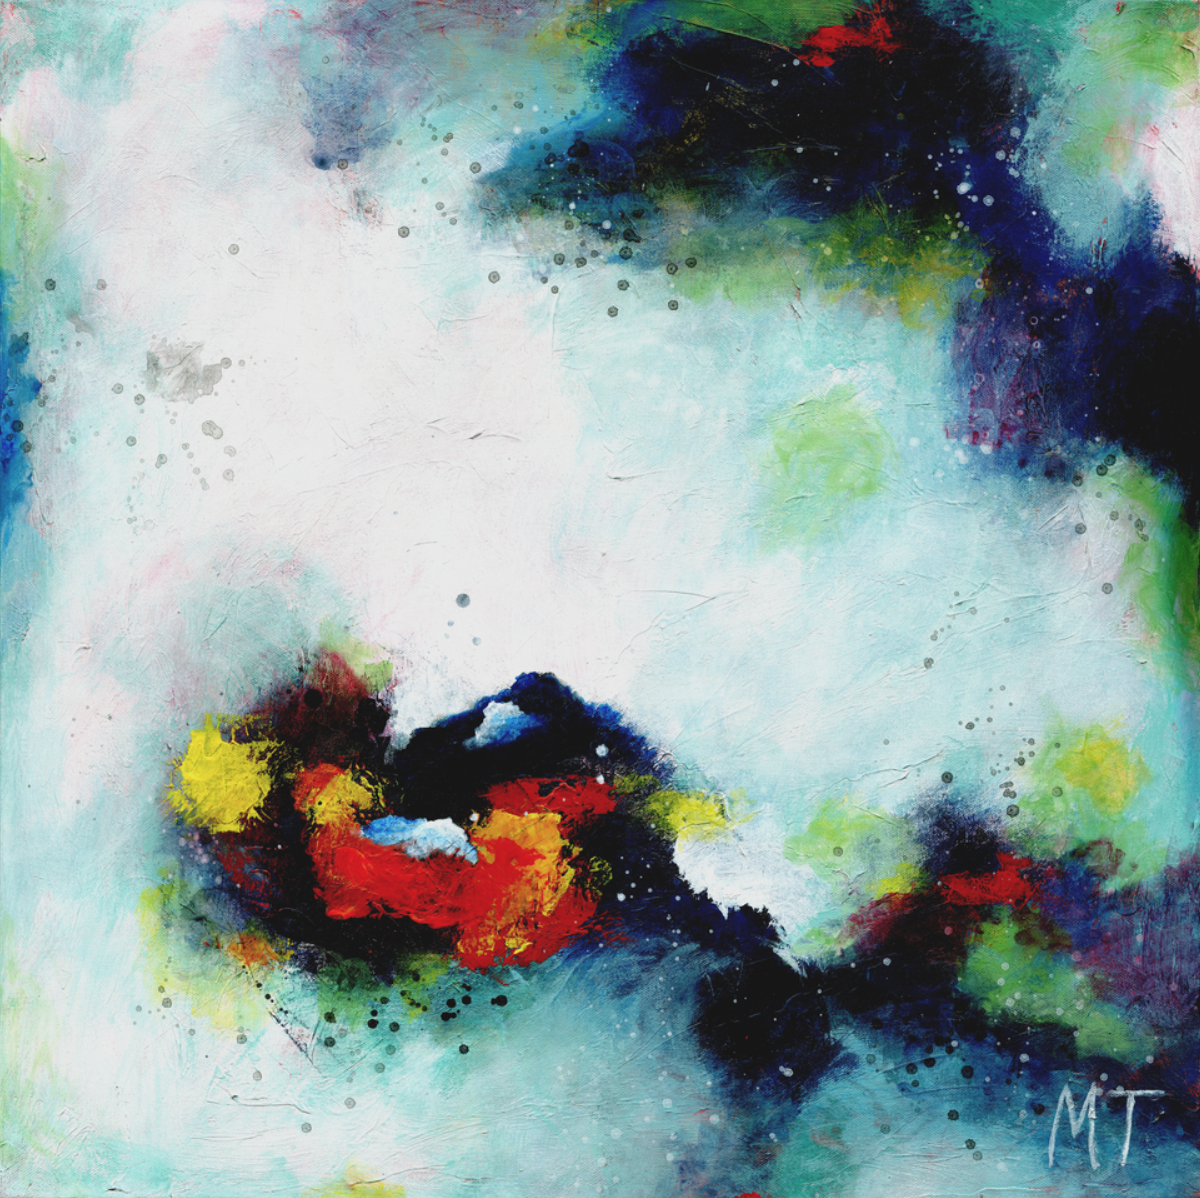 abstract_introspection_painting_art_atmosphere_mandy_thompson_interiority.jpg